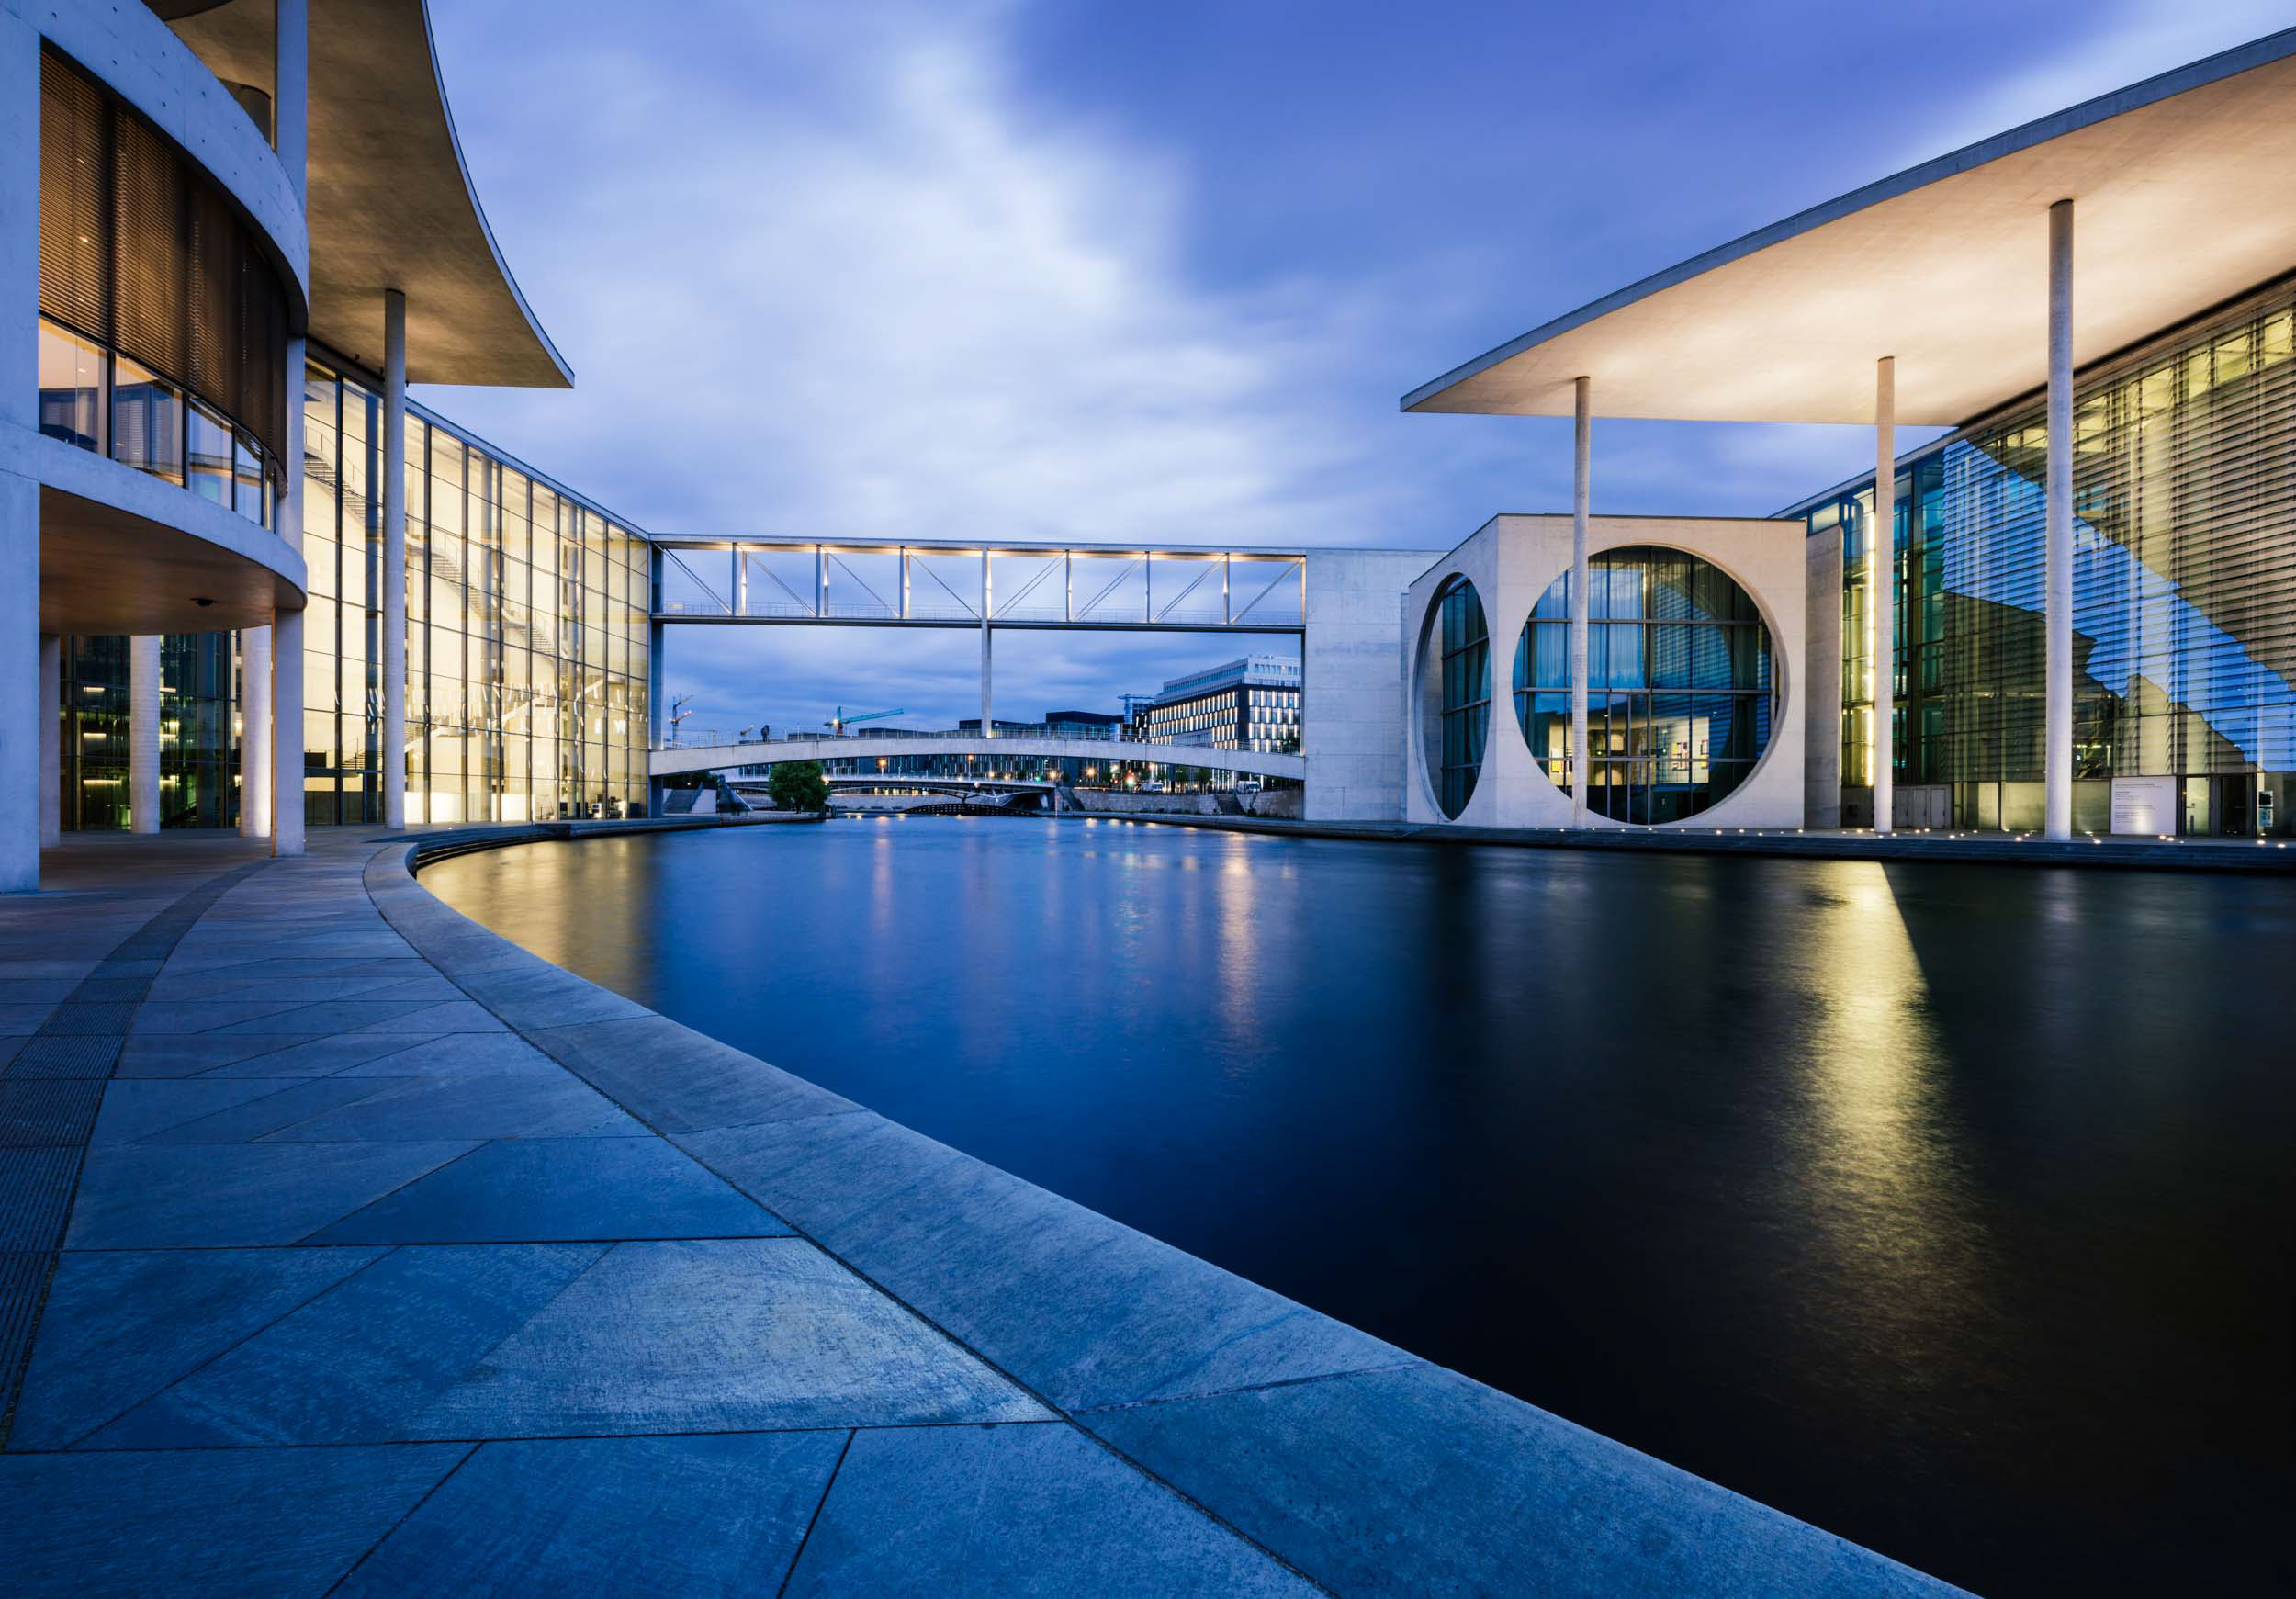 luders-haus-modern-architecture-berlin-germany-europe